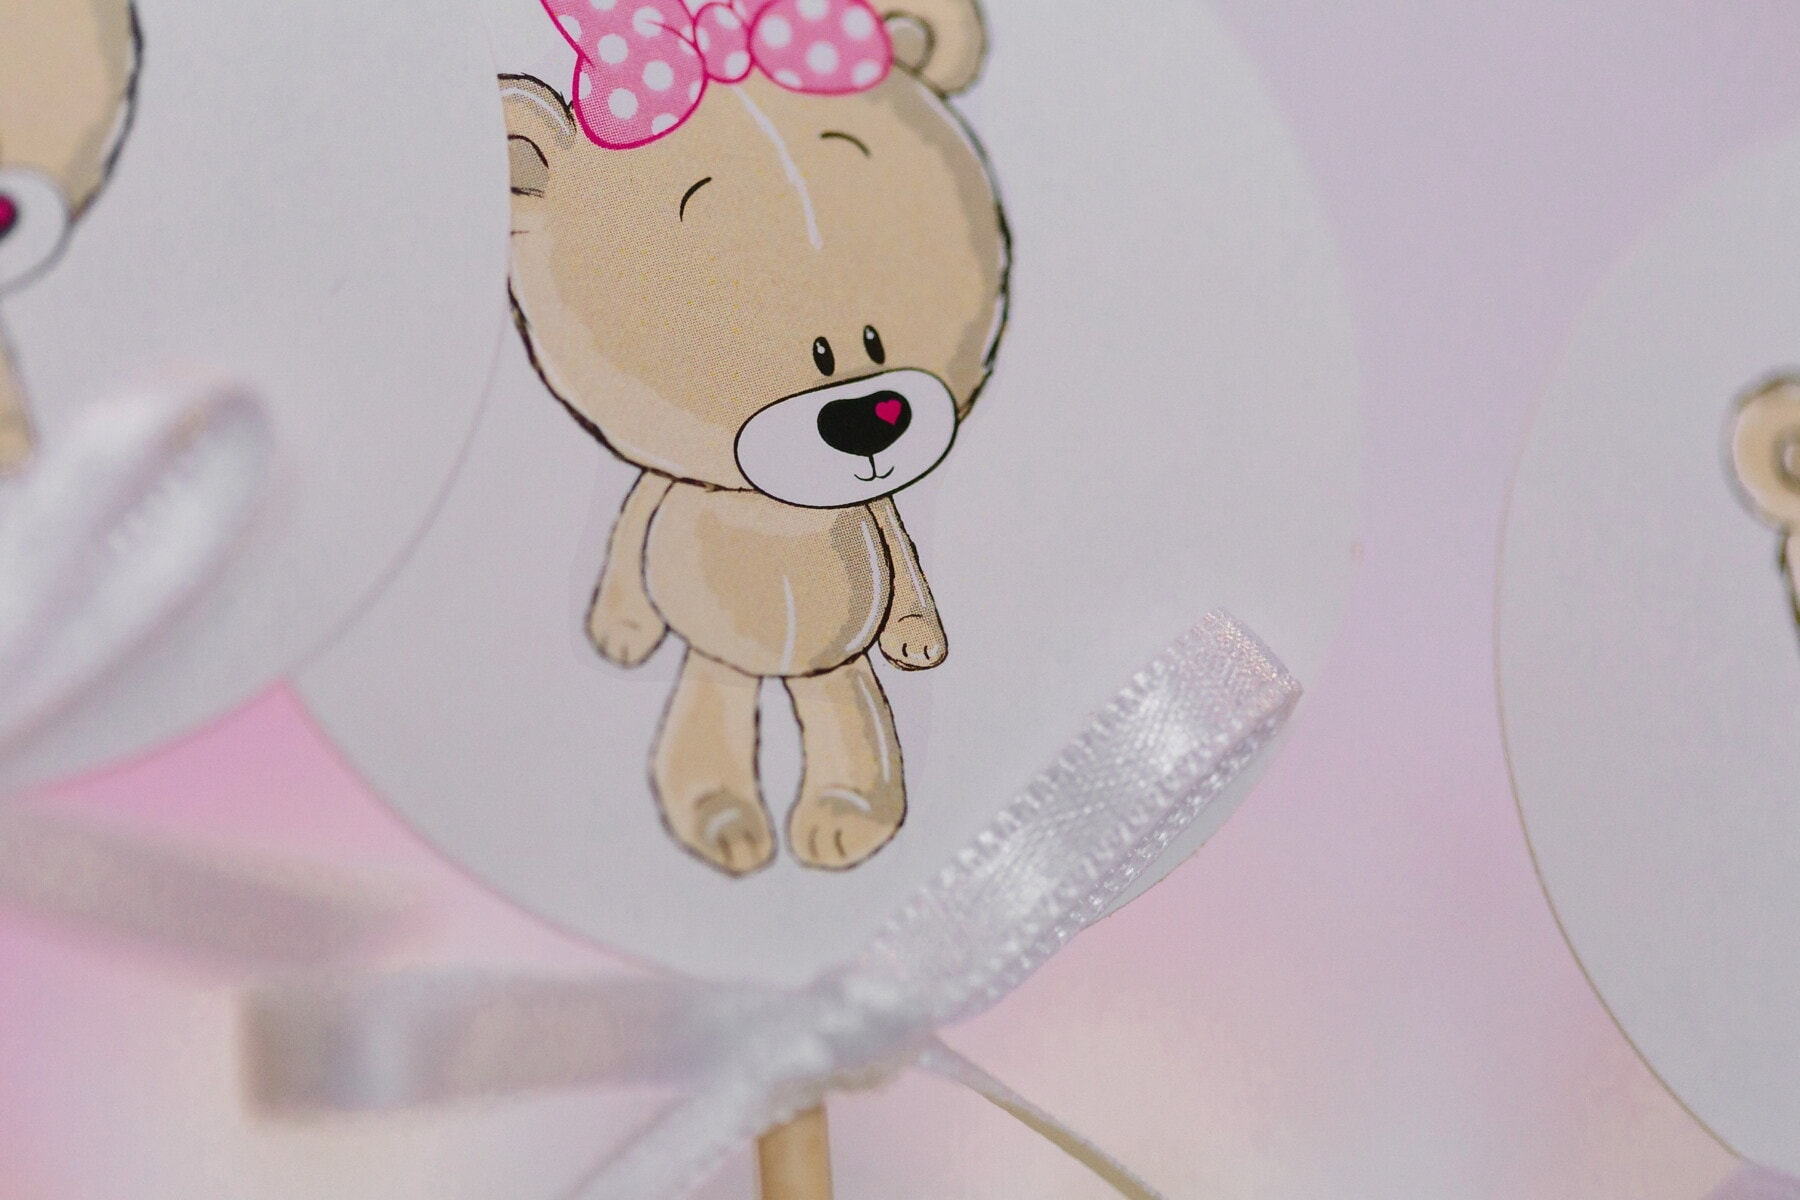 design, teddy bear toy, sketch, decorative, object, color, art, cute, funny, brown